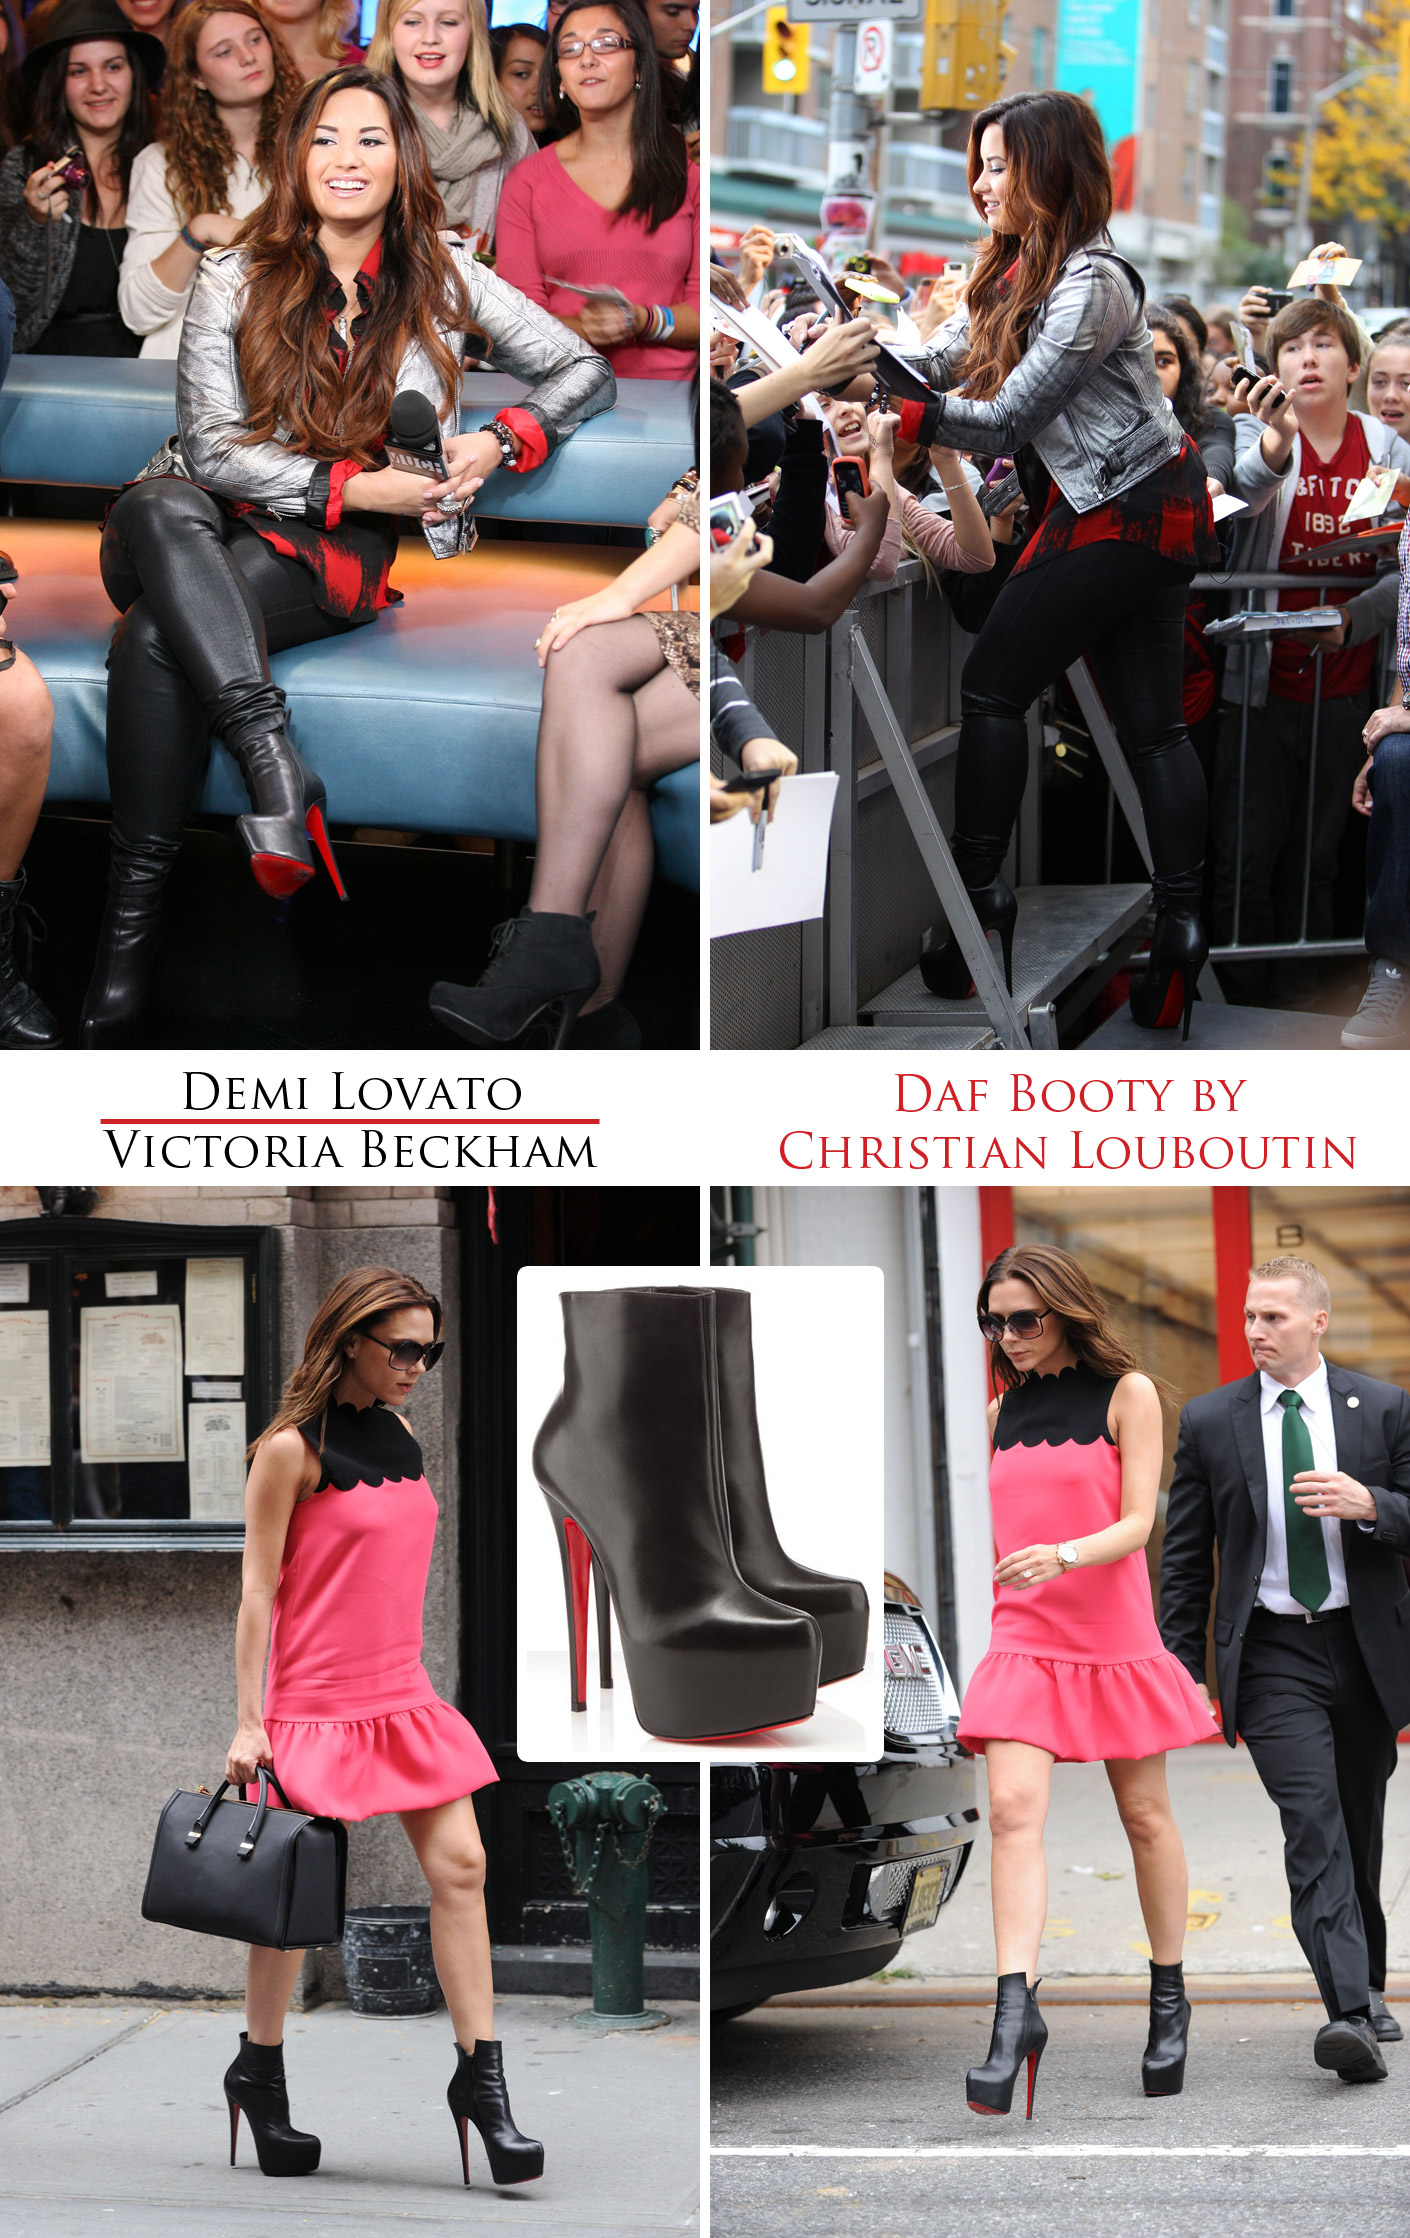 Demi lovato high heels 5